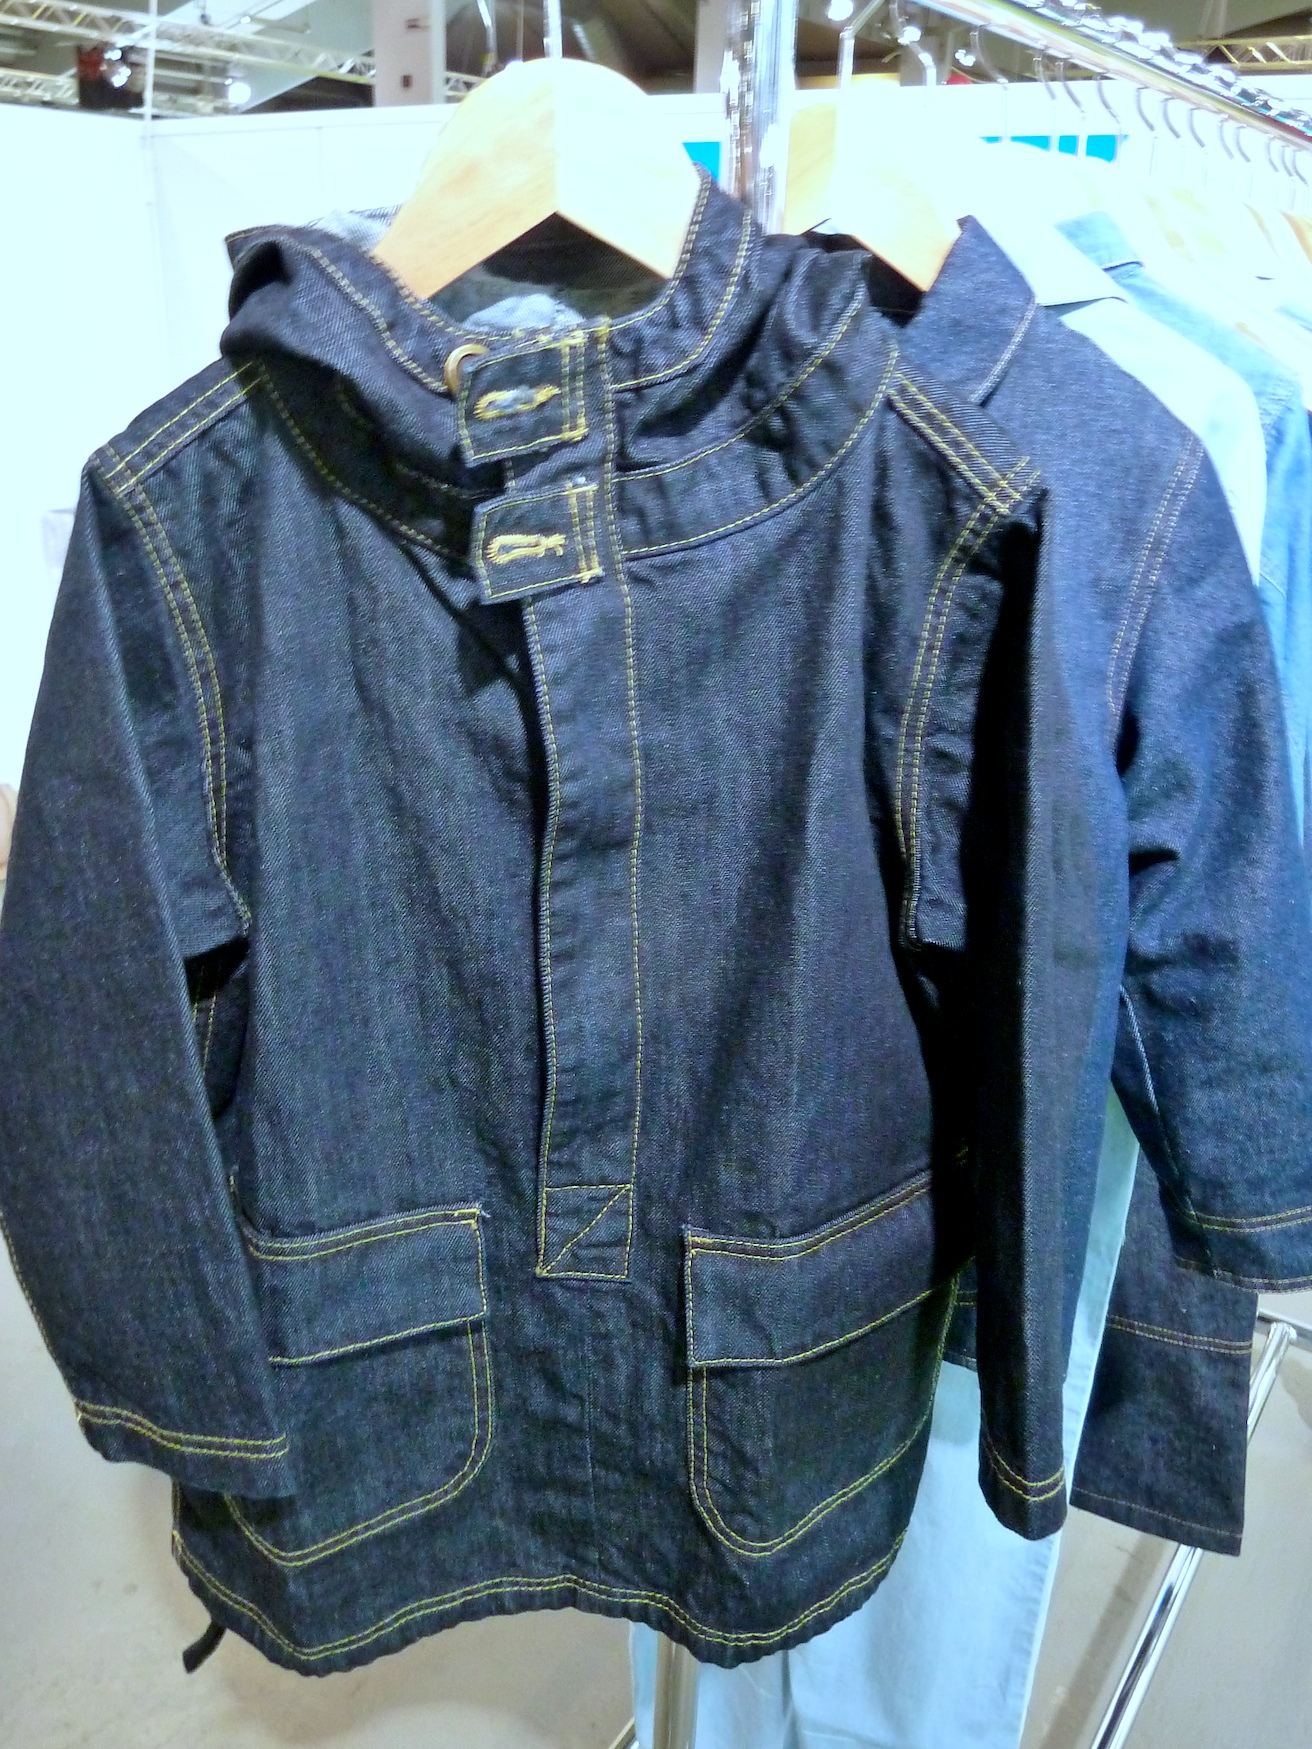 Organic denim inspired by workwear from new label BLUBLU at Ciff Kids for summer 2012